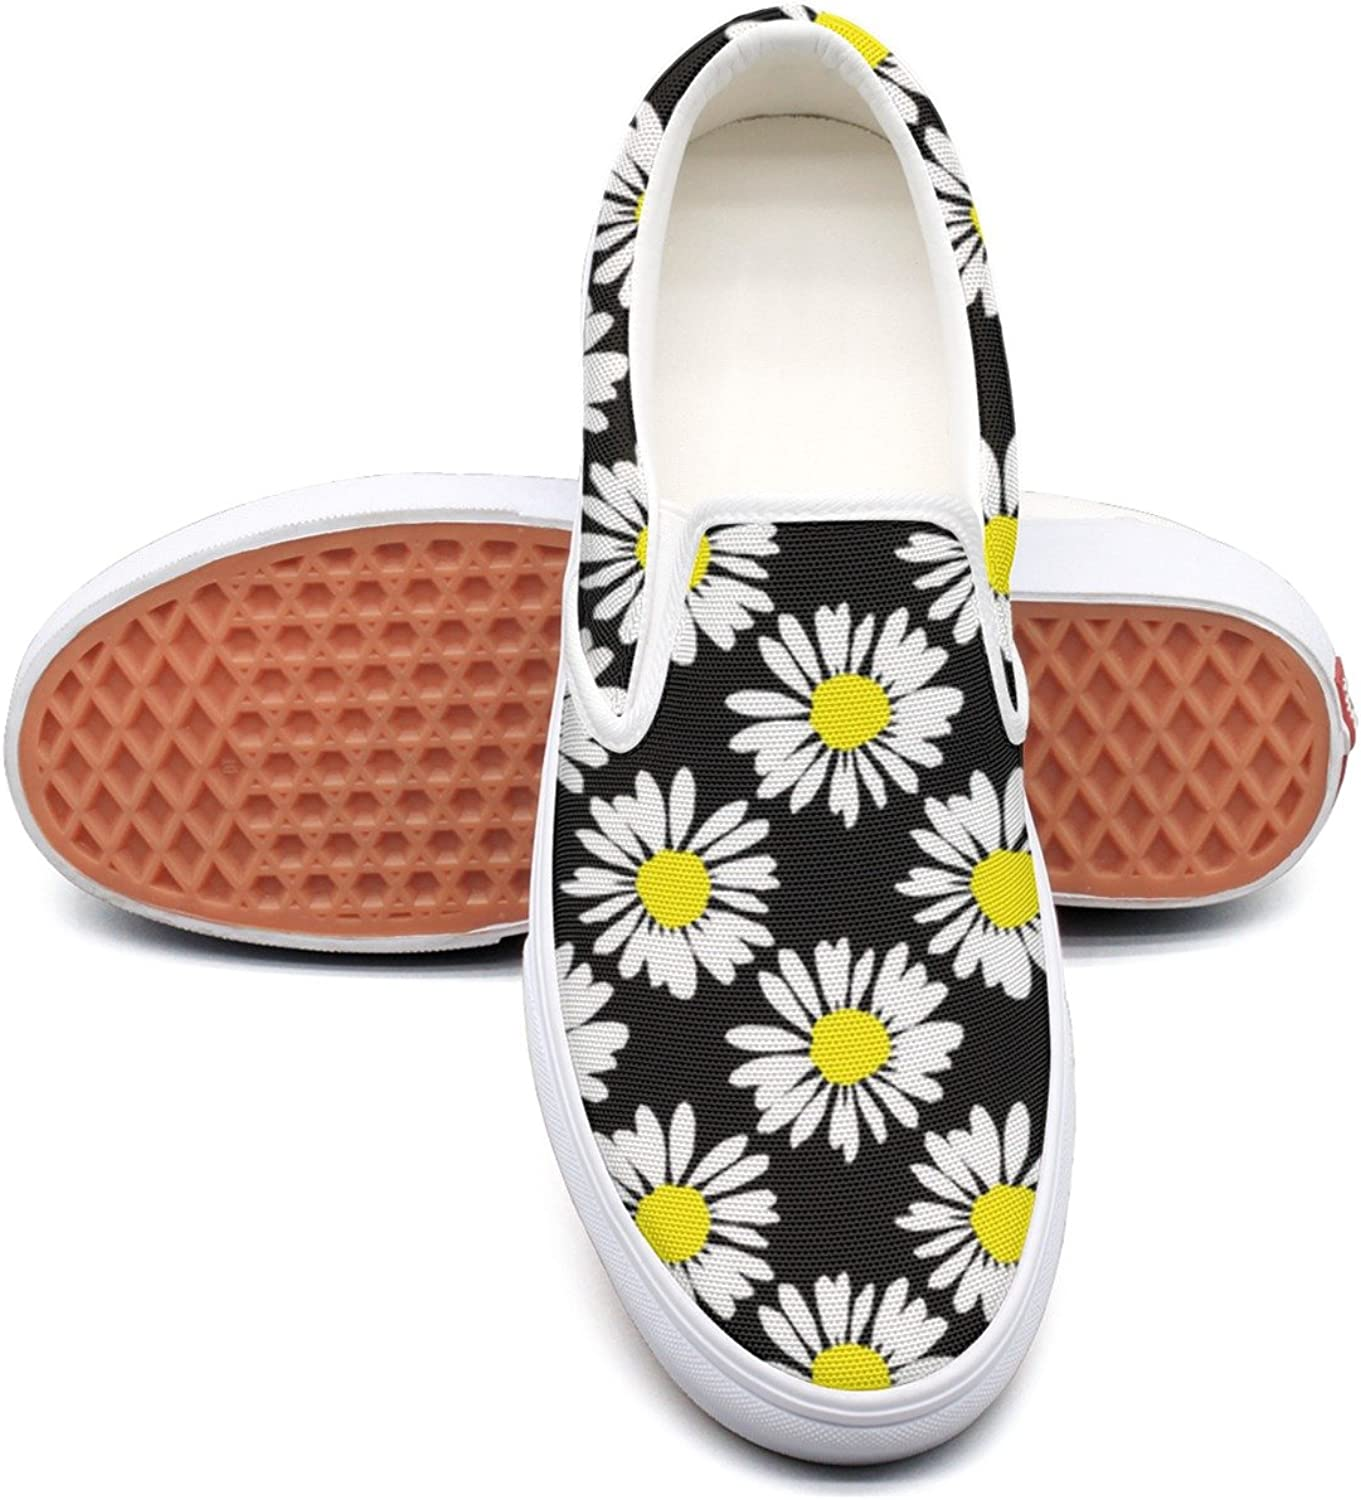 Hjkggd fgfds Casual Daisies Flower Yellow White Womens Ladies Canvas shoes